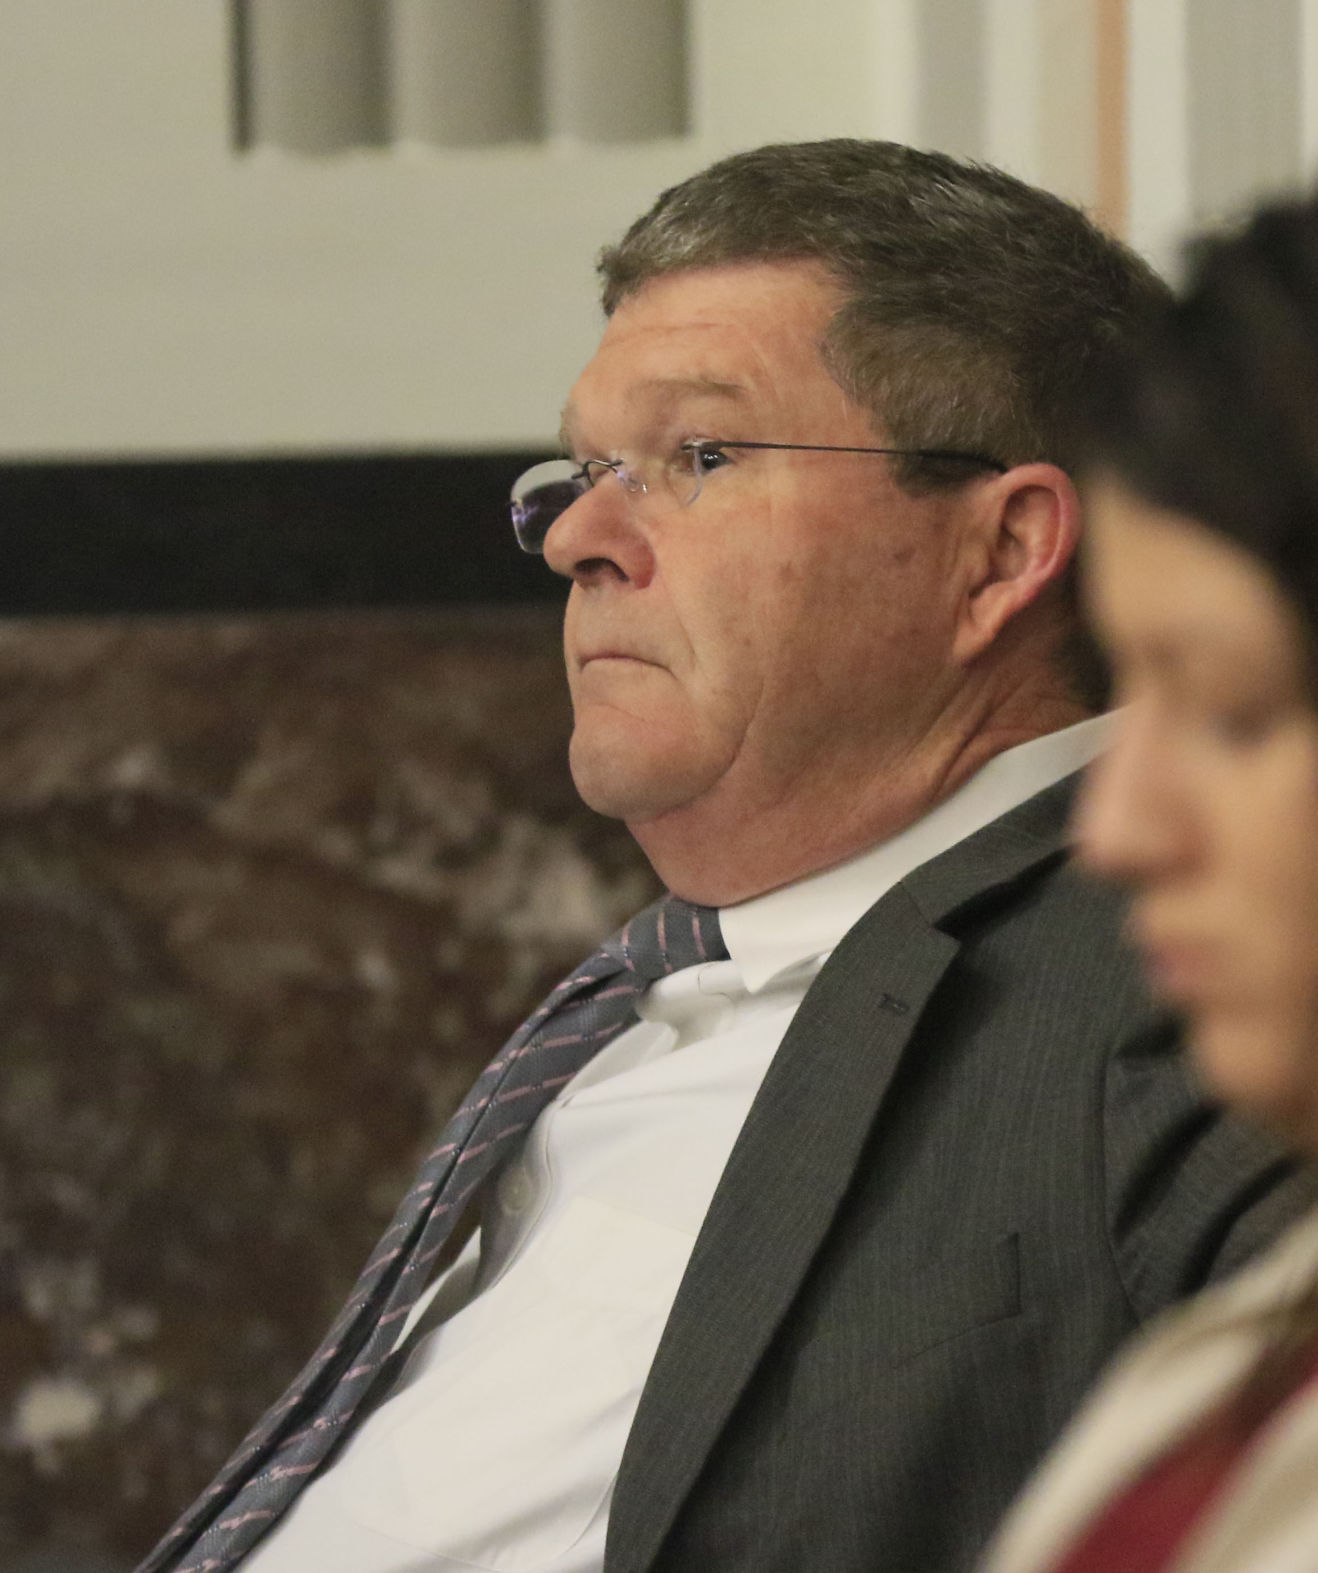 Blackwellsentencing Former state Rep Gus Blackwell to